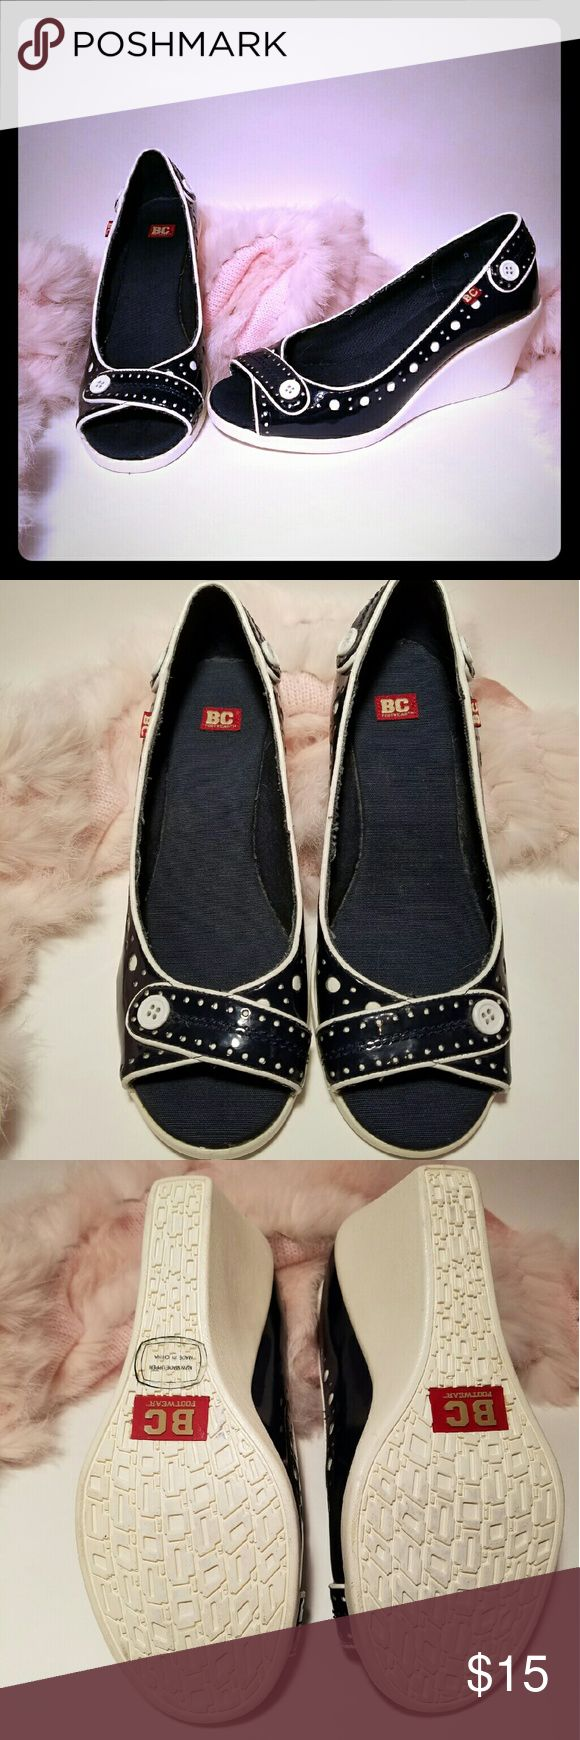 BC Footwear - Navy & White Wedge Shoes Adorable Navy & White wedges from BC Footwear!  Like new with very minor discolorations on the soles. Looks great with a sun dress or skinny jeans! BC Footwear Shoes Wedges